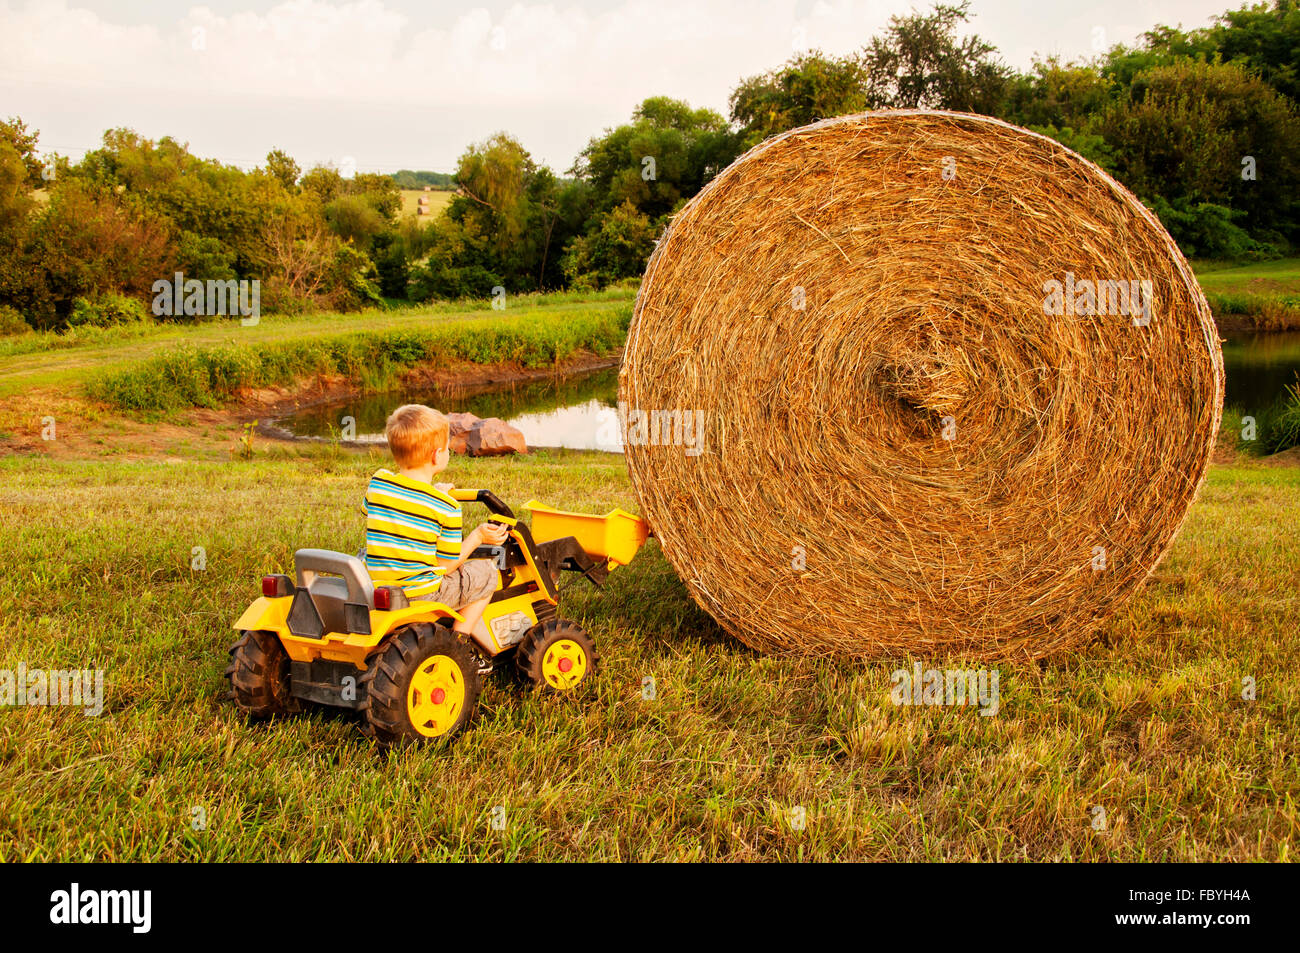 boy trying to lift haybale with  bucket on toy tractor - Stock Image